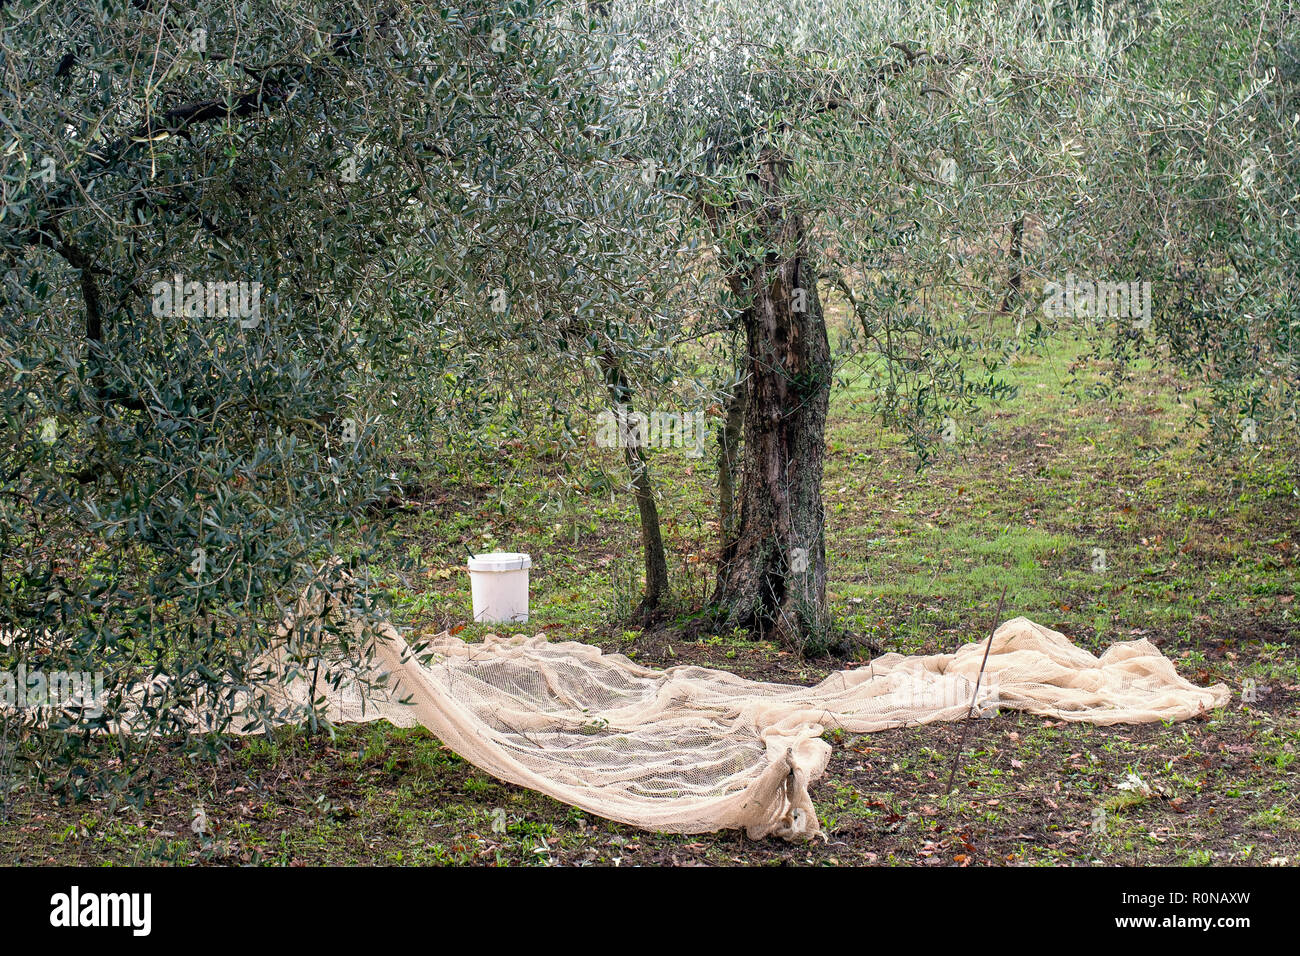 Preparations for olive harvest in rural north Tuscany with nets already in position. Small scale agriculture. - Stock Image